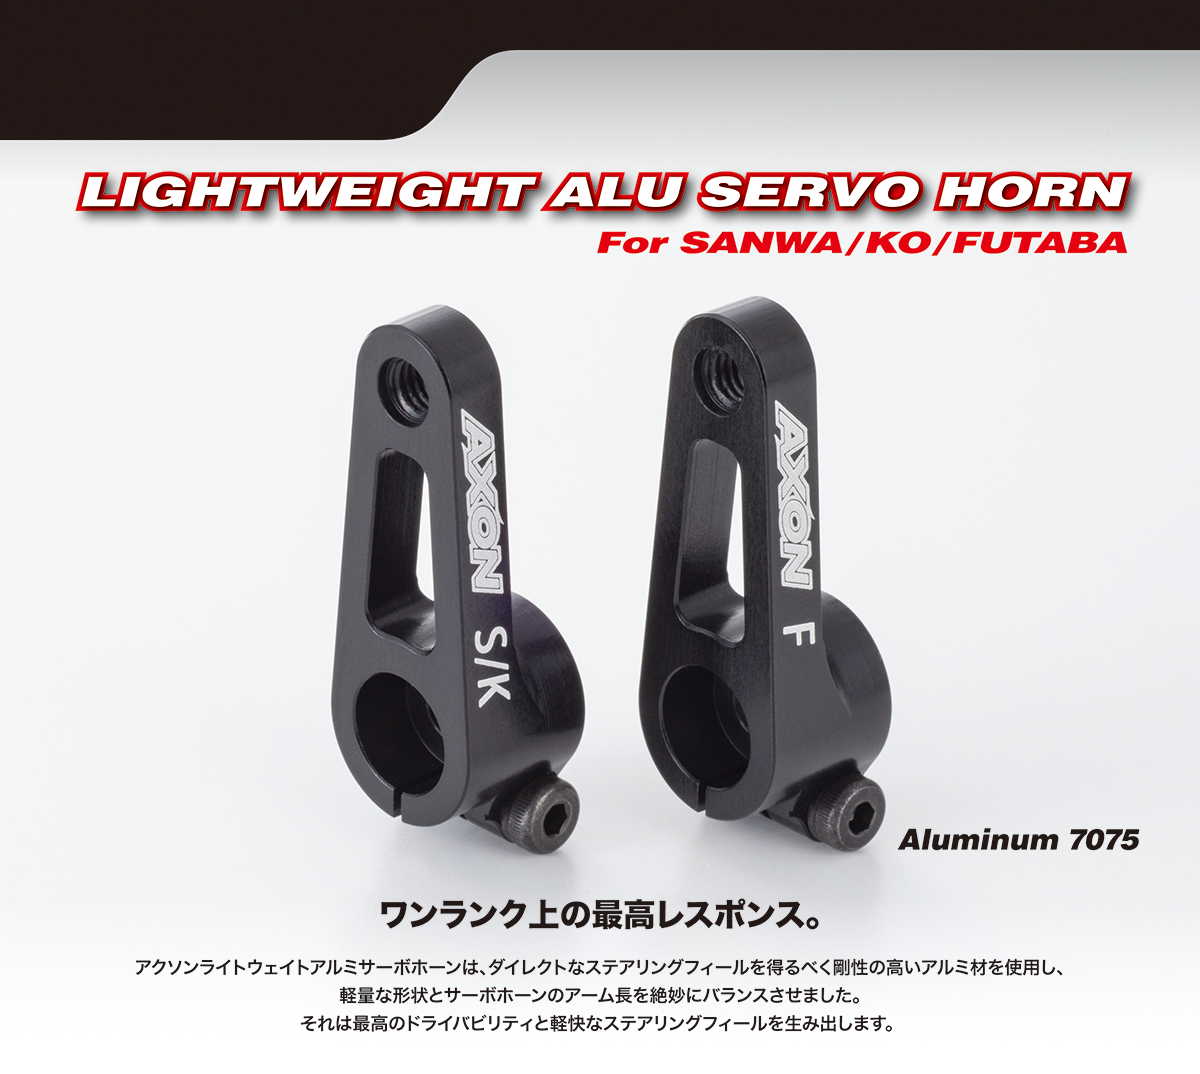 https://store.pro-s-futaba.co.jp/images/MS-SA-x001.png